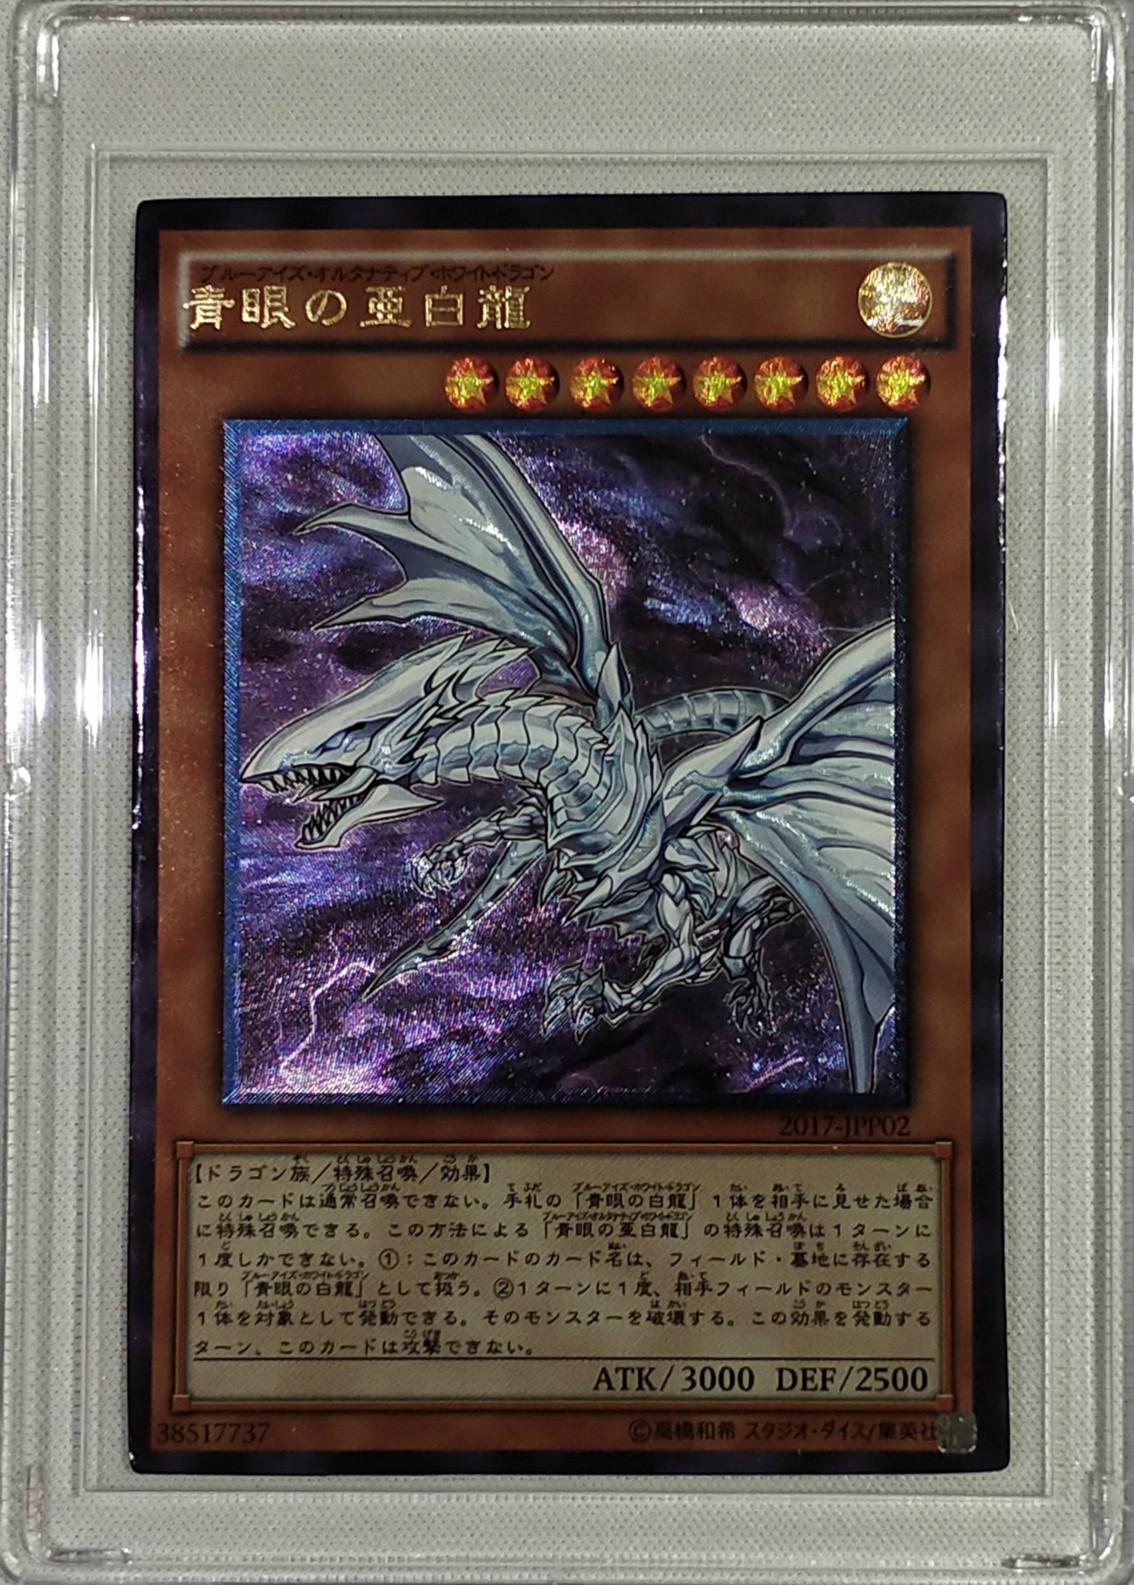 Yu Gi Oh DIY Blue-Eyes Alternative White Dragon Colorful Toys Hobbies Hobby Collectibles Game Collection Anime Cards